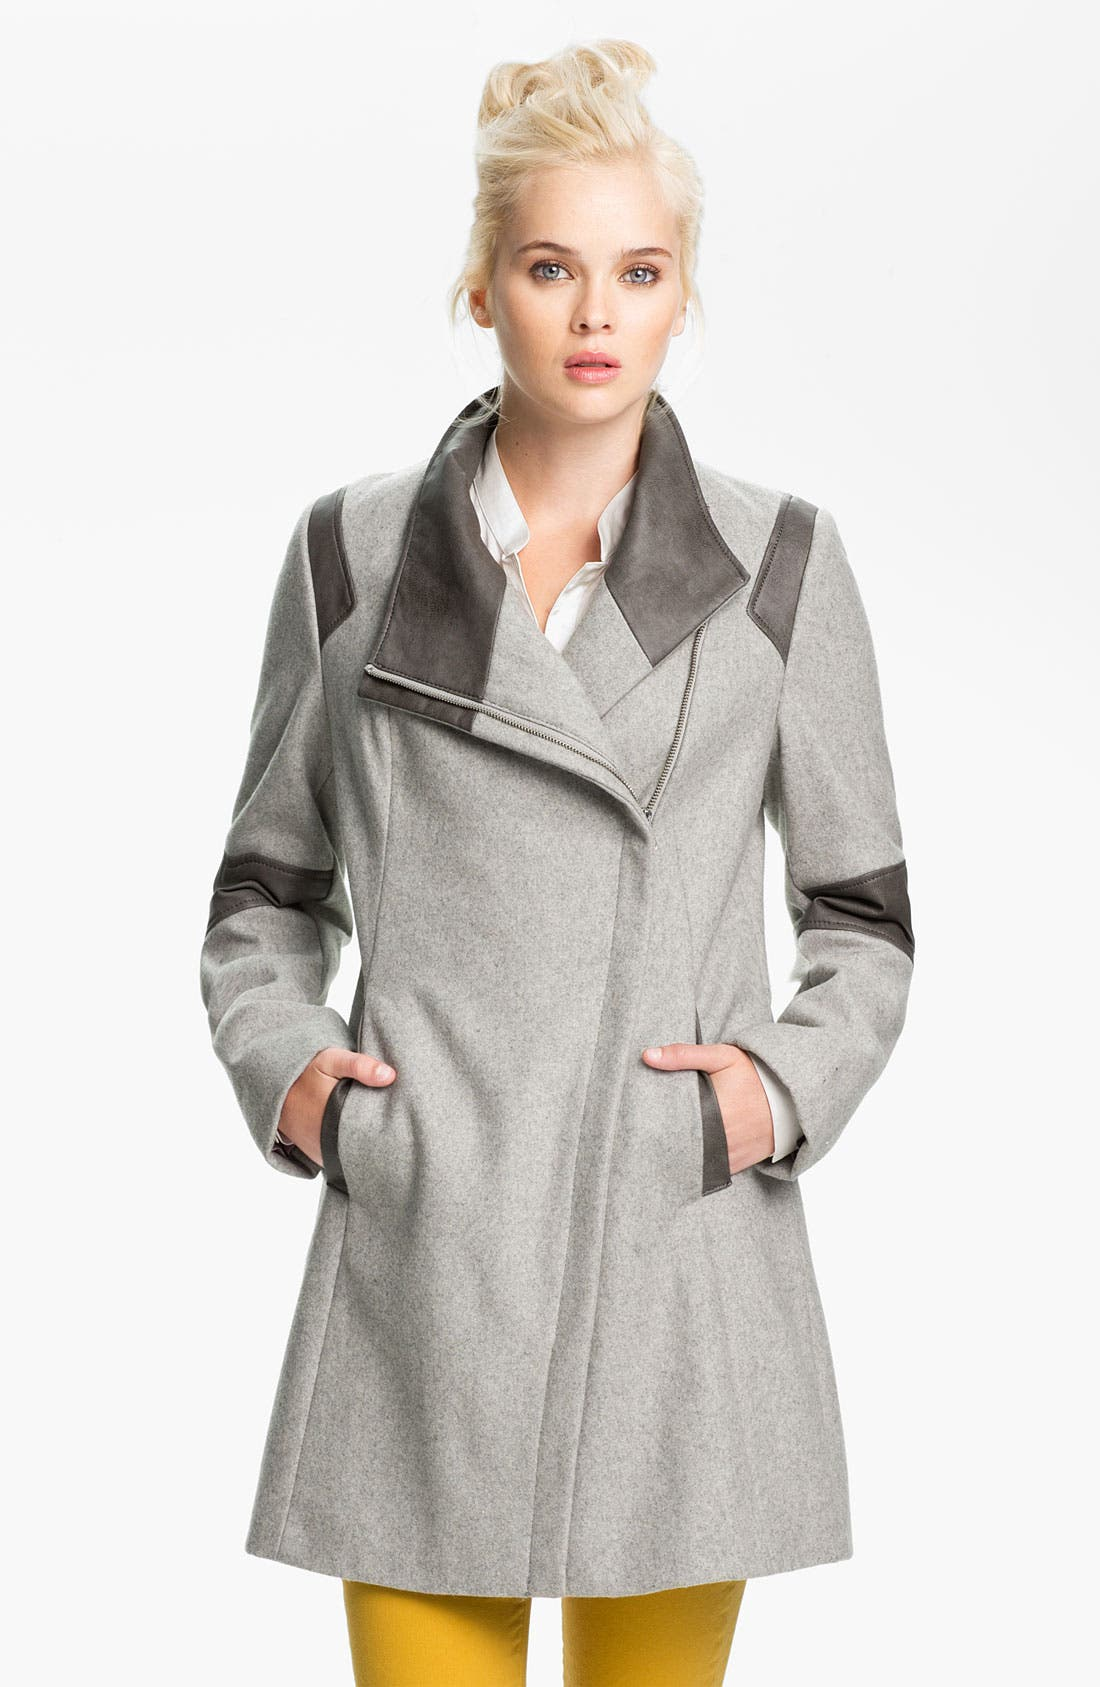 Alternate Image 1 Selected - Calvin Klein Faux Leather Trim Walking Coat